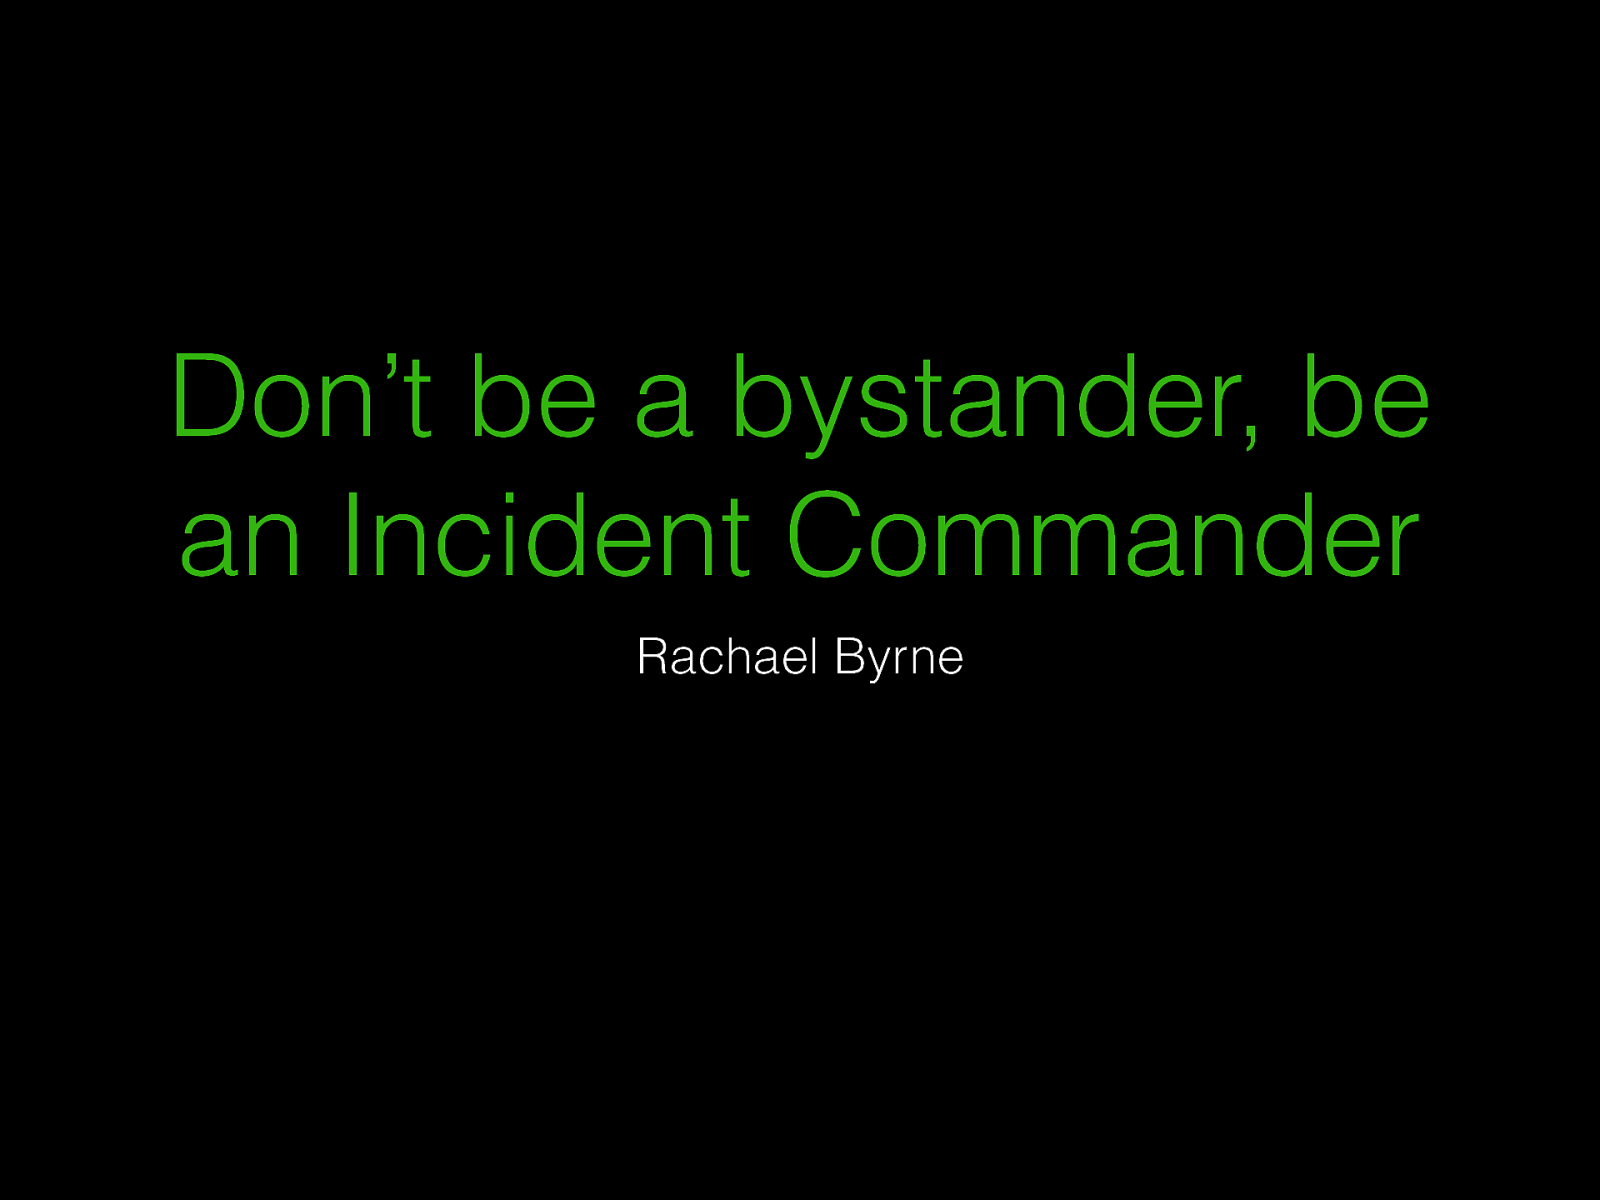 Don't Be a Bystander, Be an Incident Commander (Ignite)